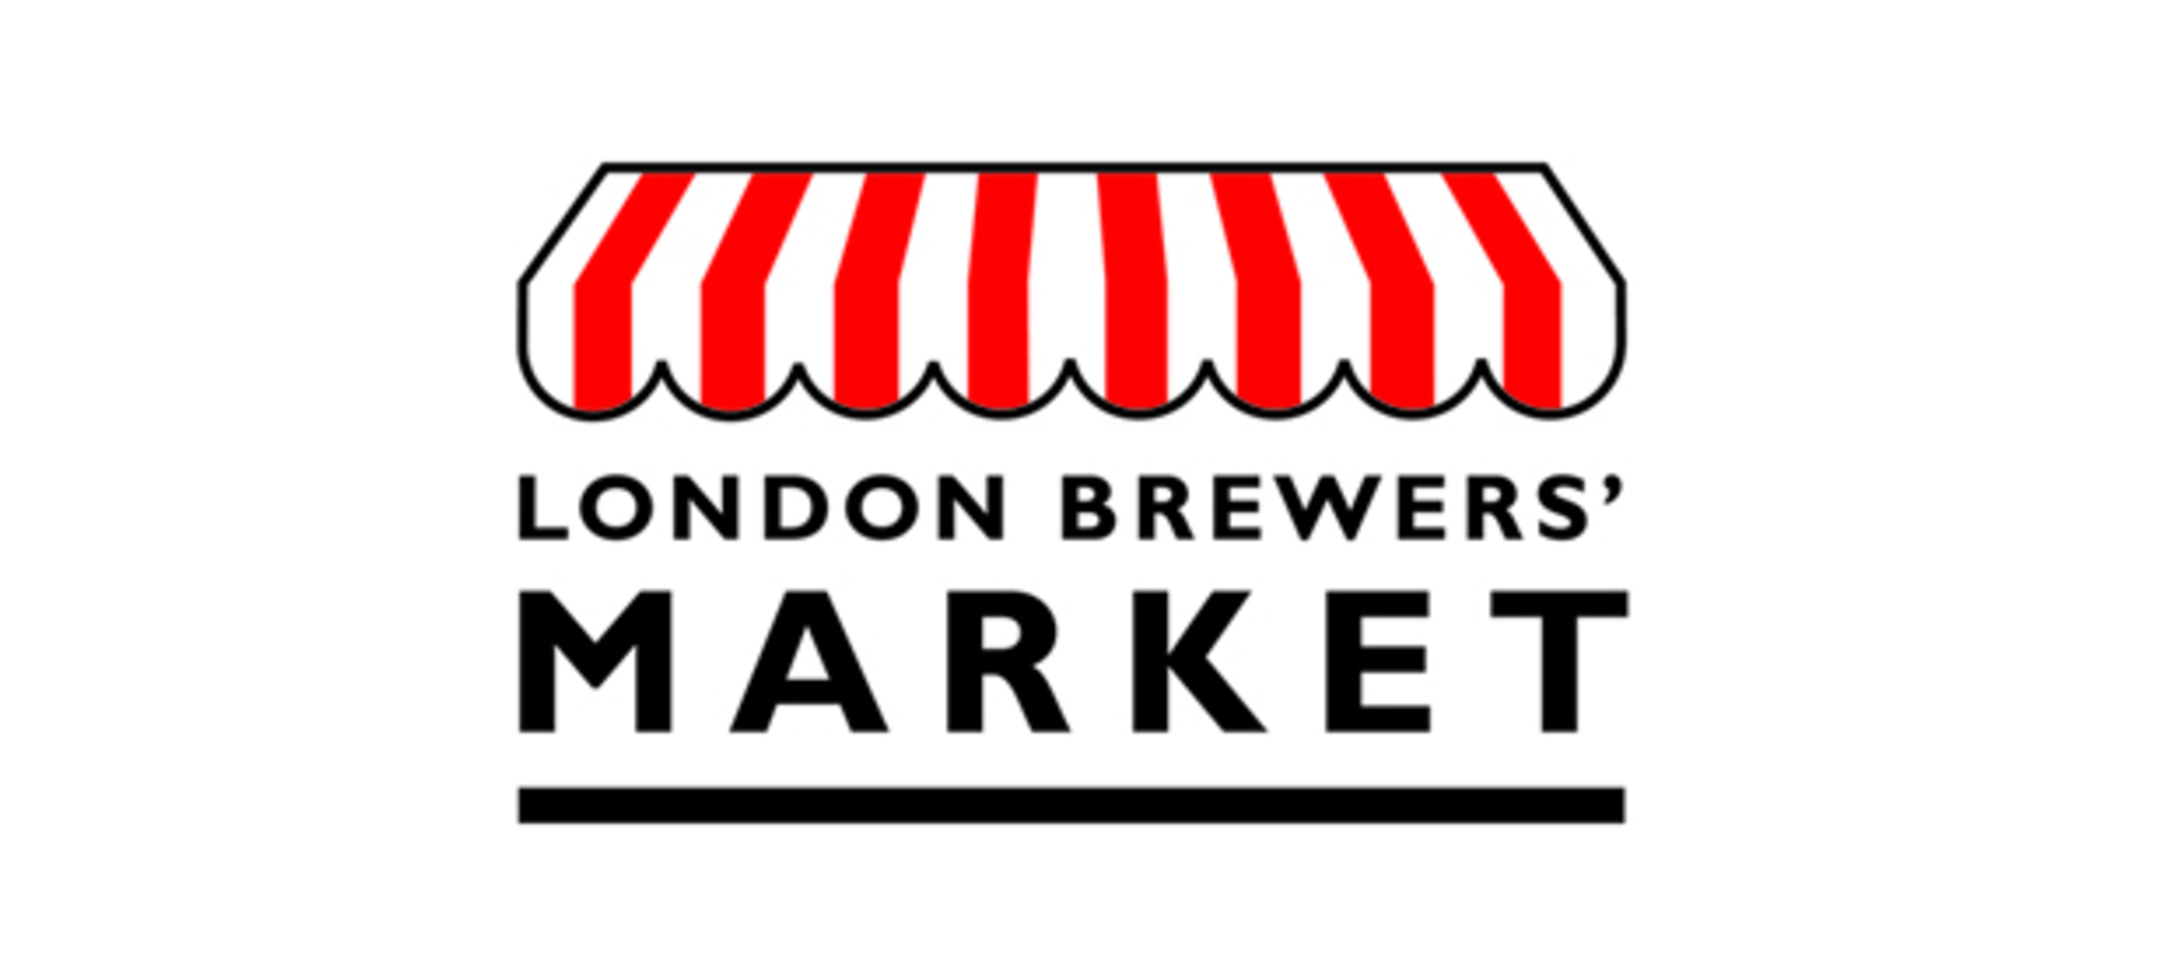 I Visit London Brewers Market with a Hangover